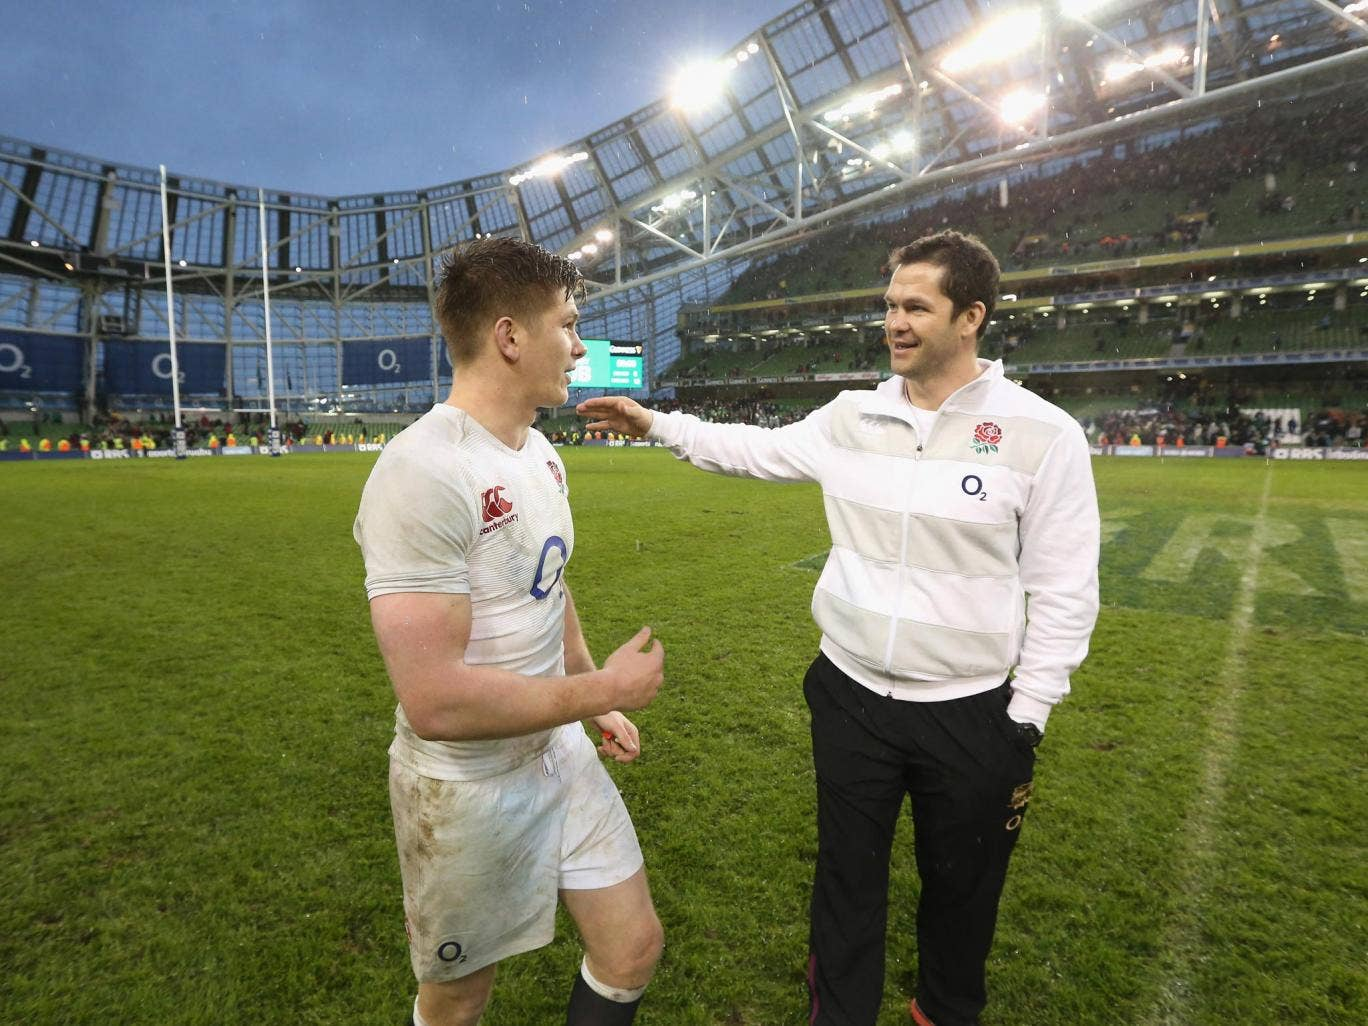 Andy Farrell (right) is a big figure in the England coaching team and son Owen provides the same commitment on the pitch